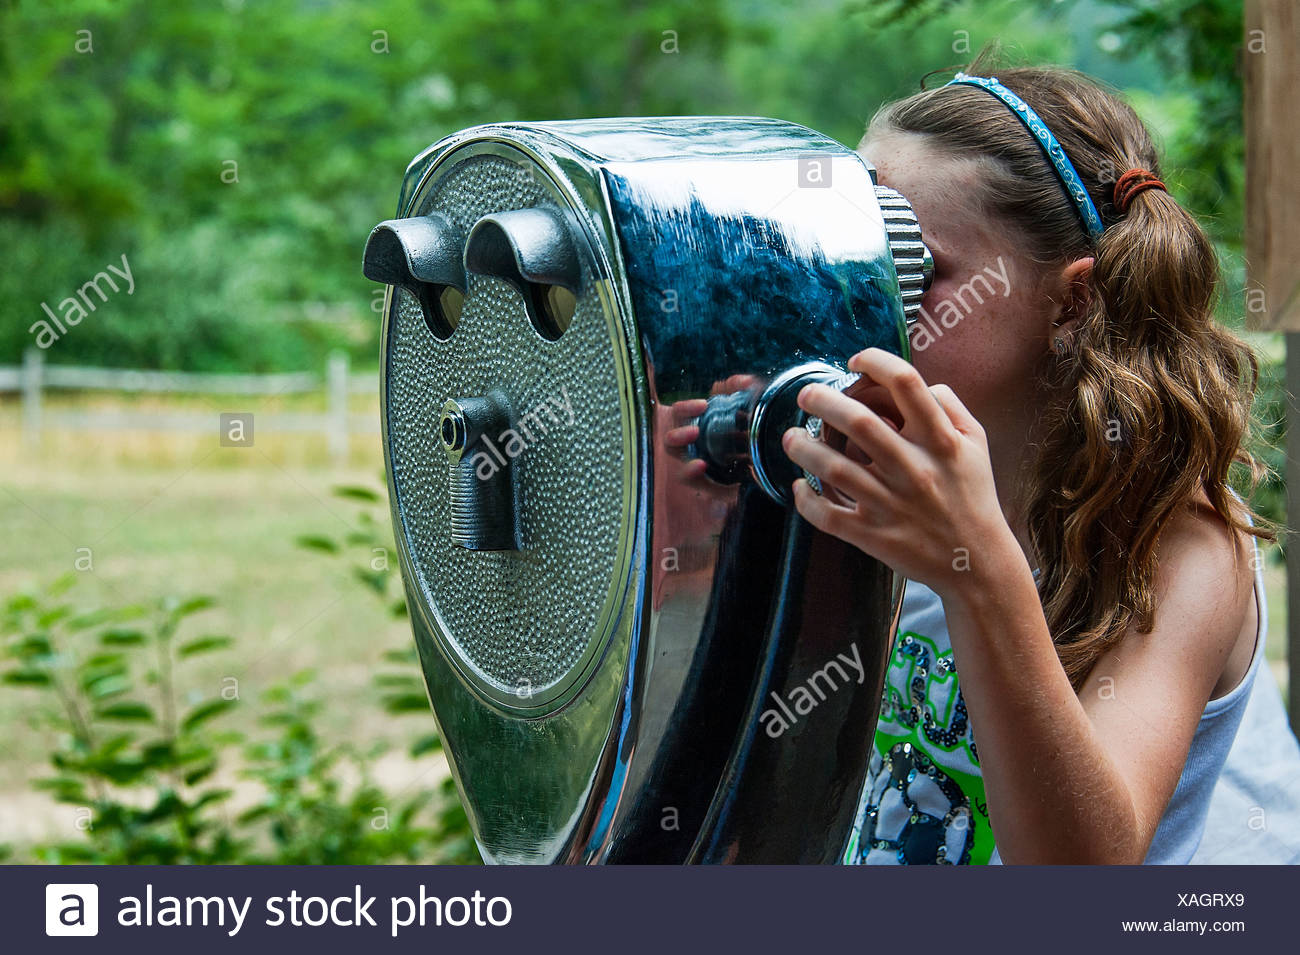 Girl looking through a viewing scope. - Stock Image